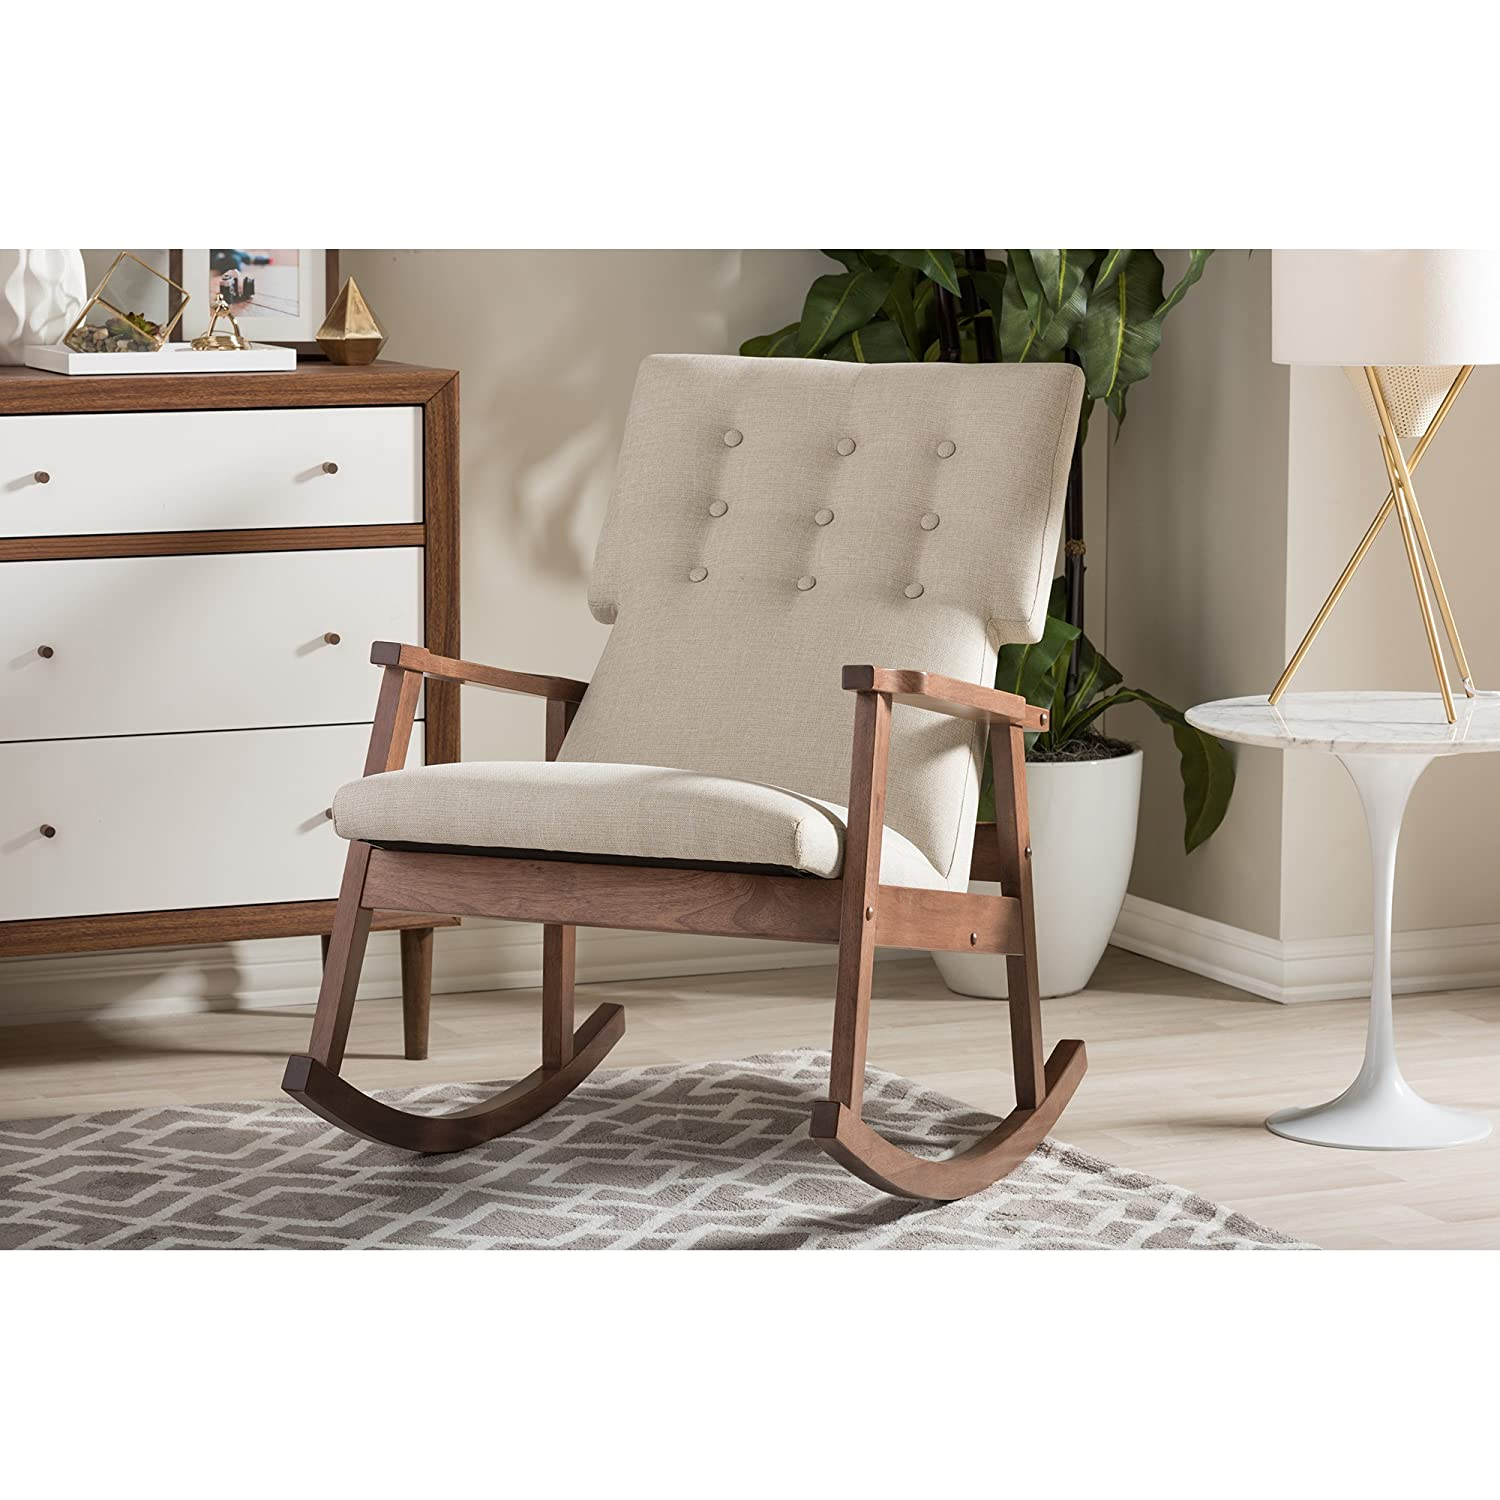 Amazon.com: Baxton Studio Agatha Mid Century Modern Fabric Upholstered  Button Tufted Rocking Chair, Light Beige: Kitchen U0026 Dining